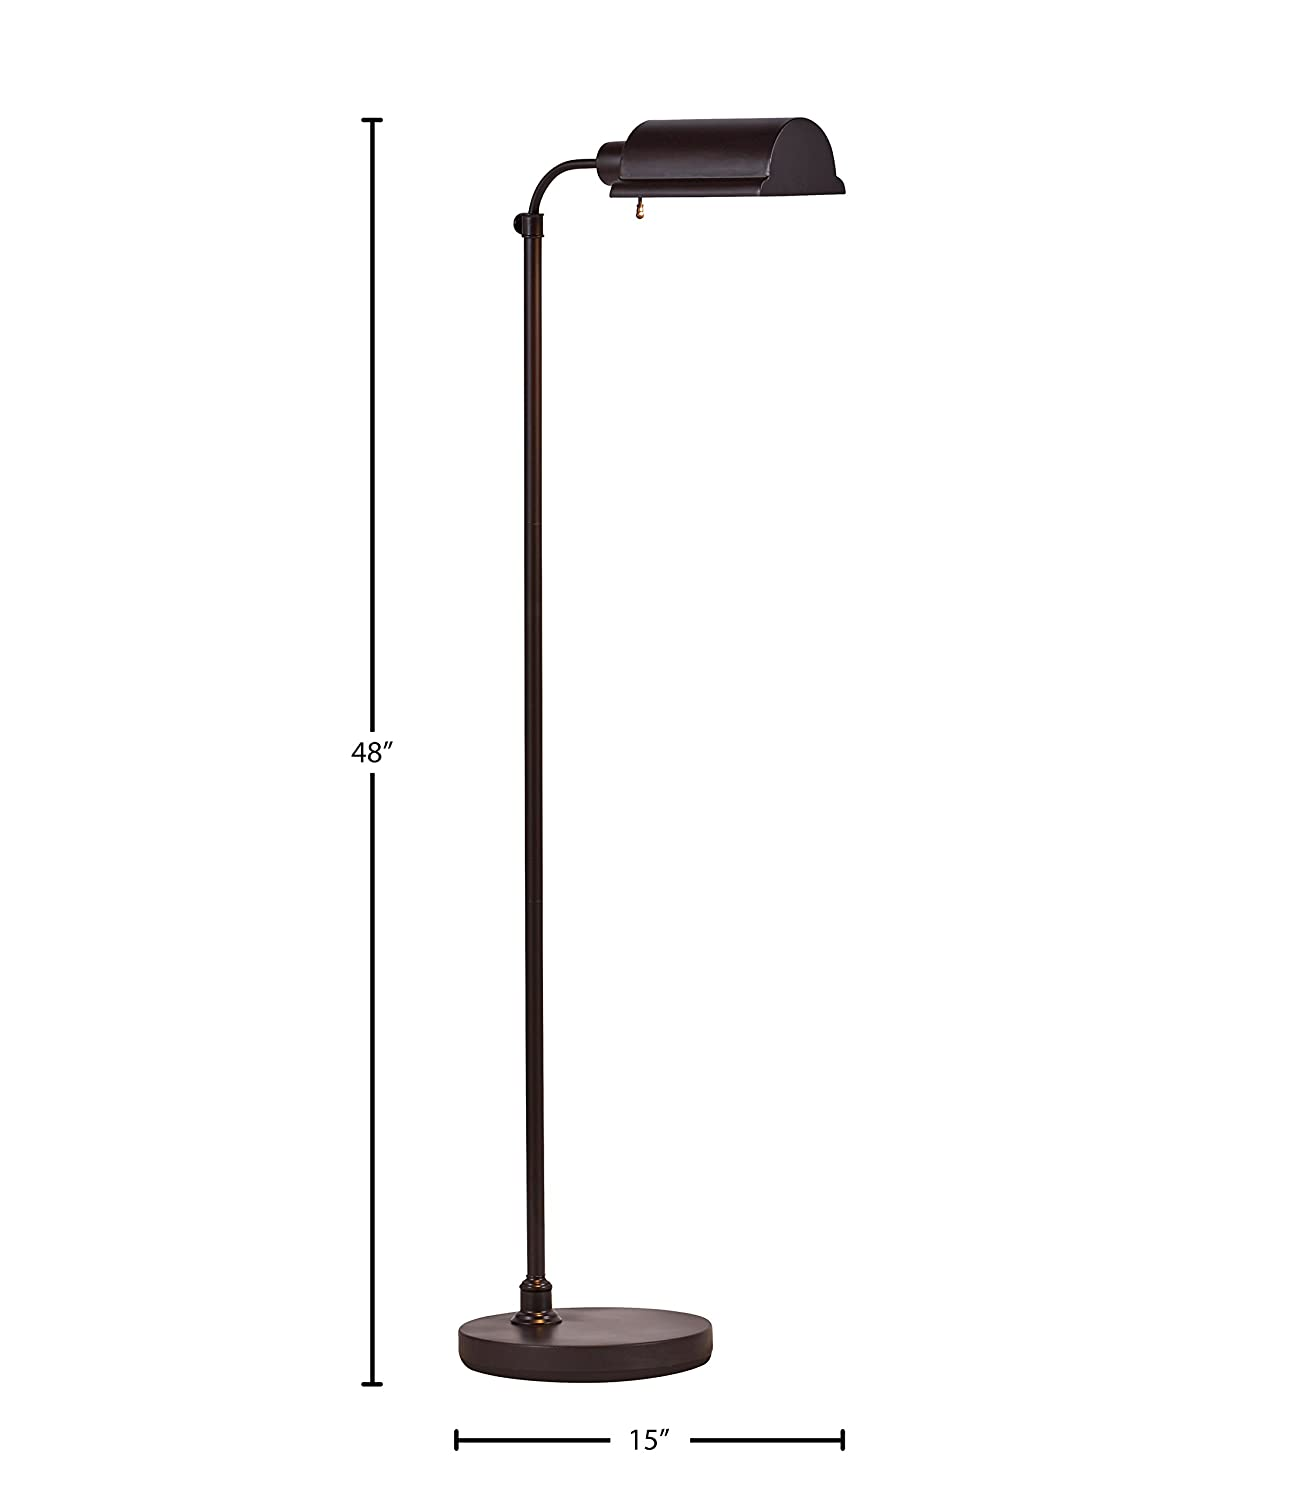 Matte Black 16 x 6.25 x 14 Inches Stone /& Beam Modern Pharmacy Table Desk Lamp With Bulb